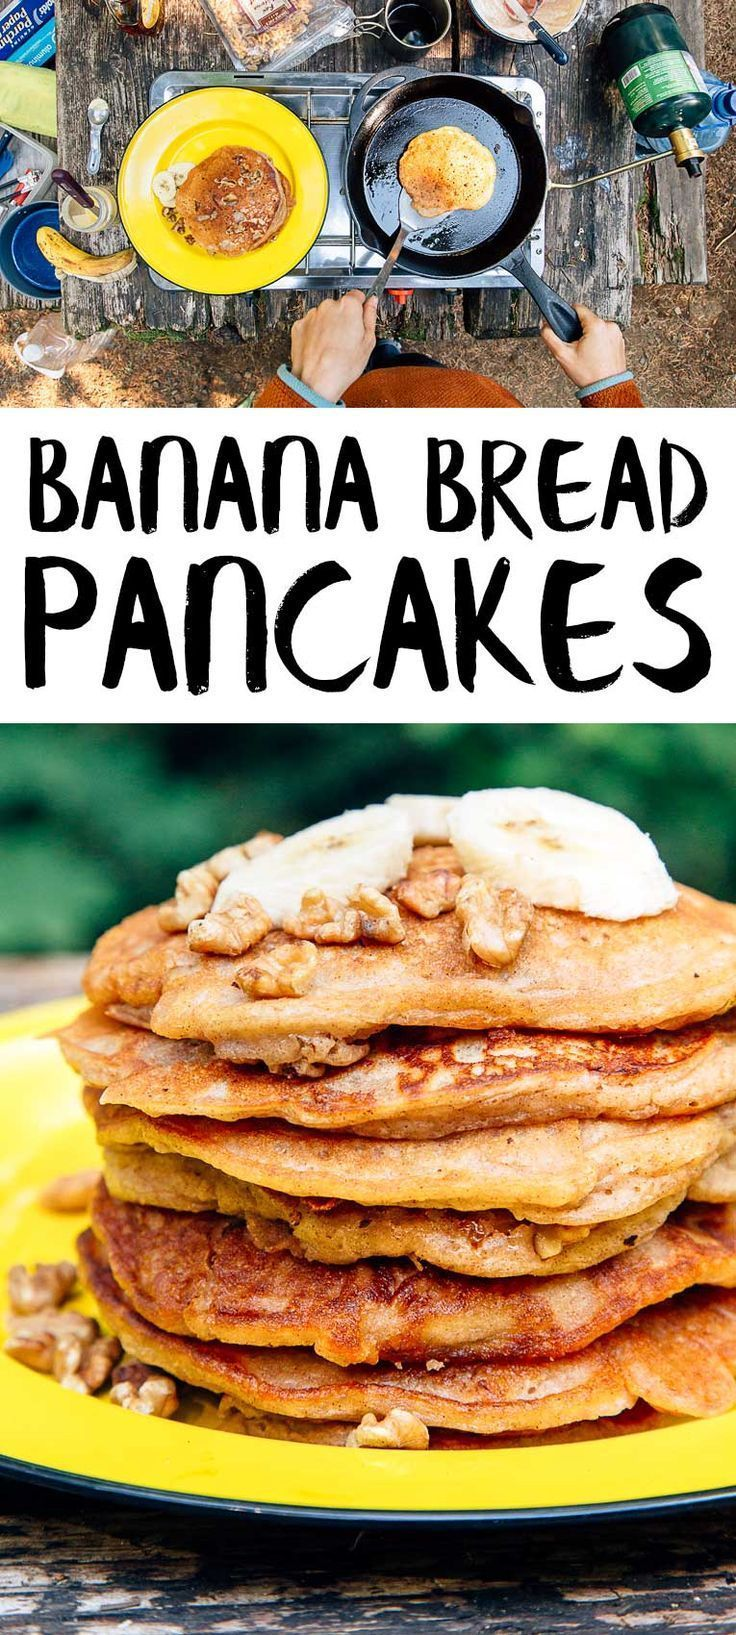 Banana Bread Pancakes Are A Delicious Way To Start Your Morning Easy Camping Food